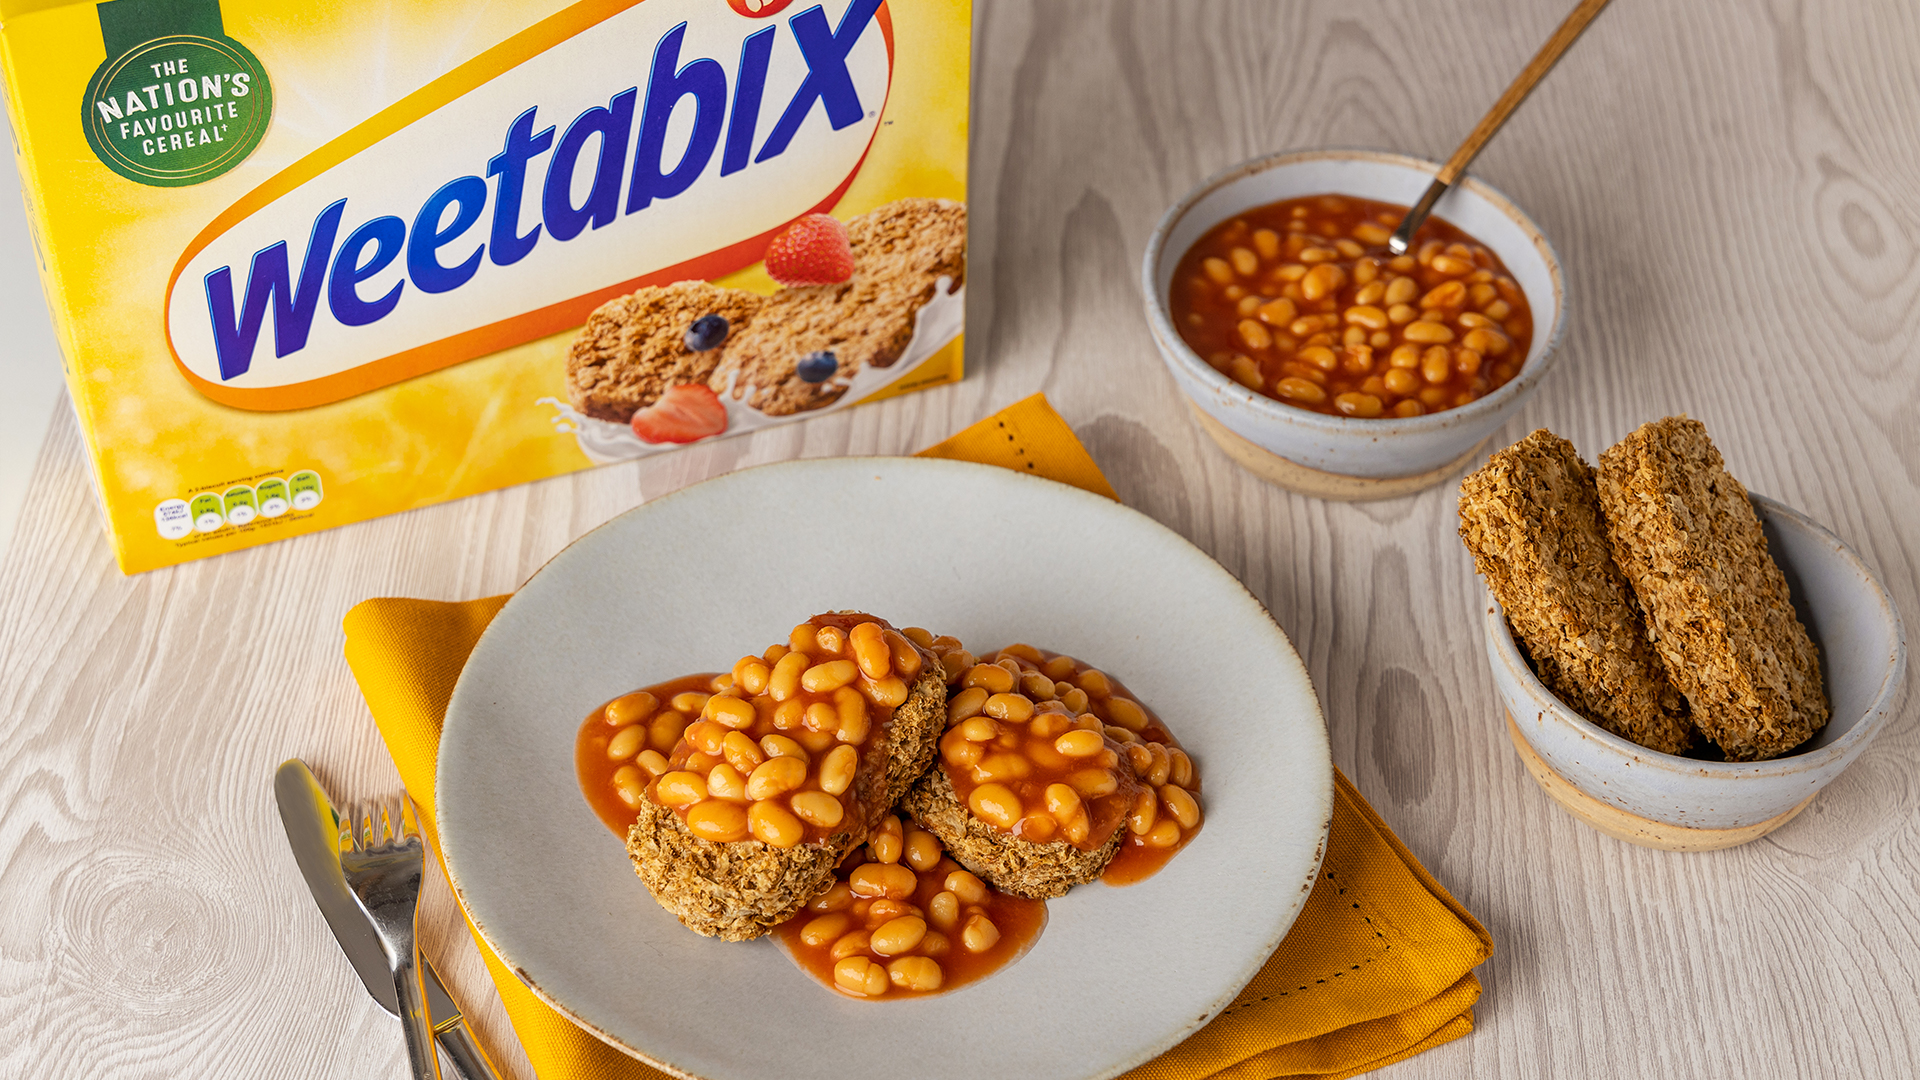 A picture of a plate with Weetabix topped with baked beans